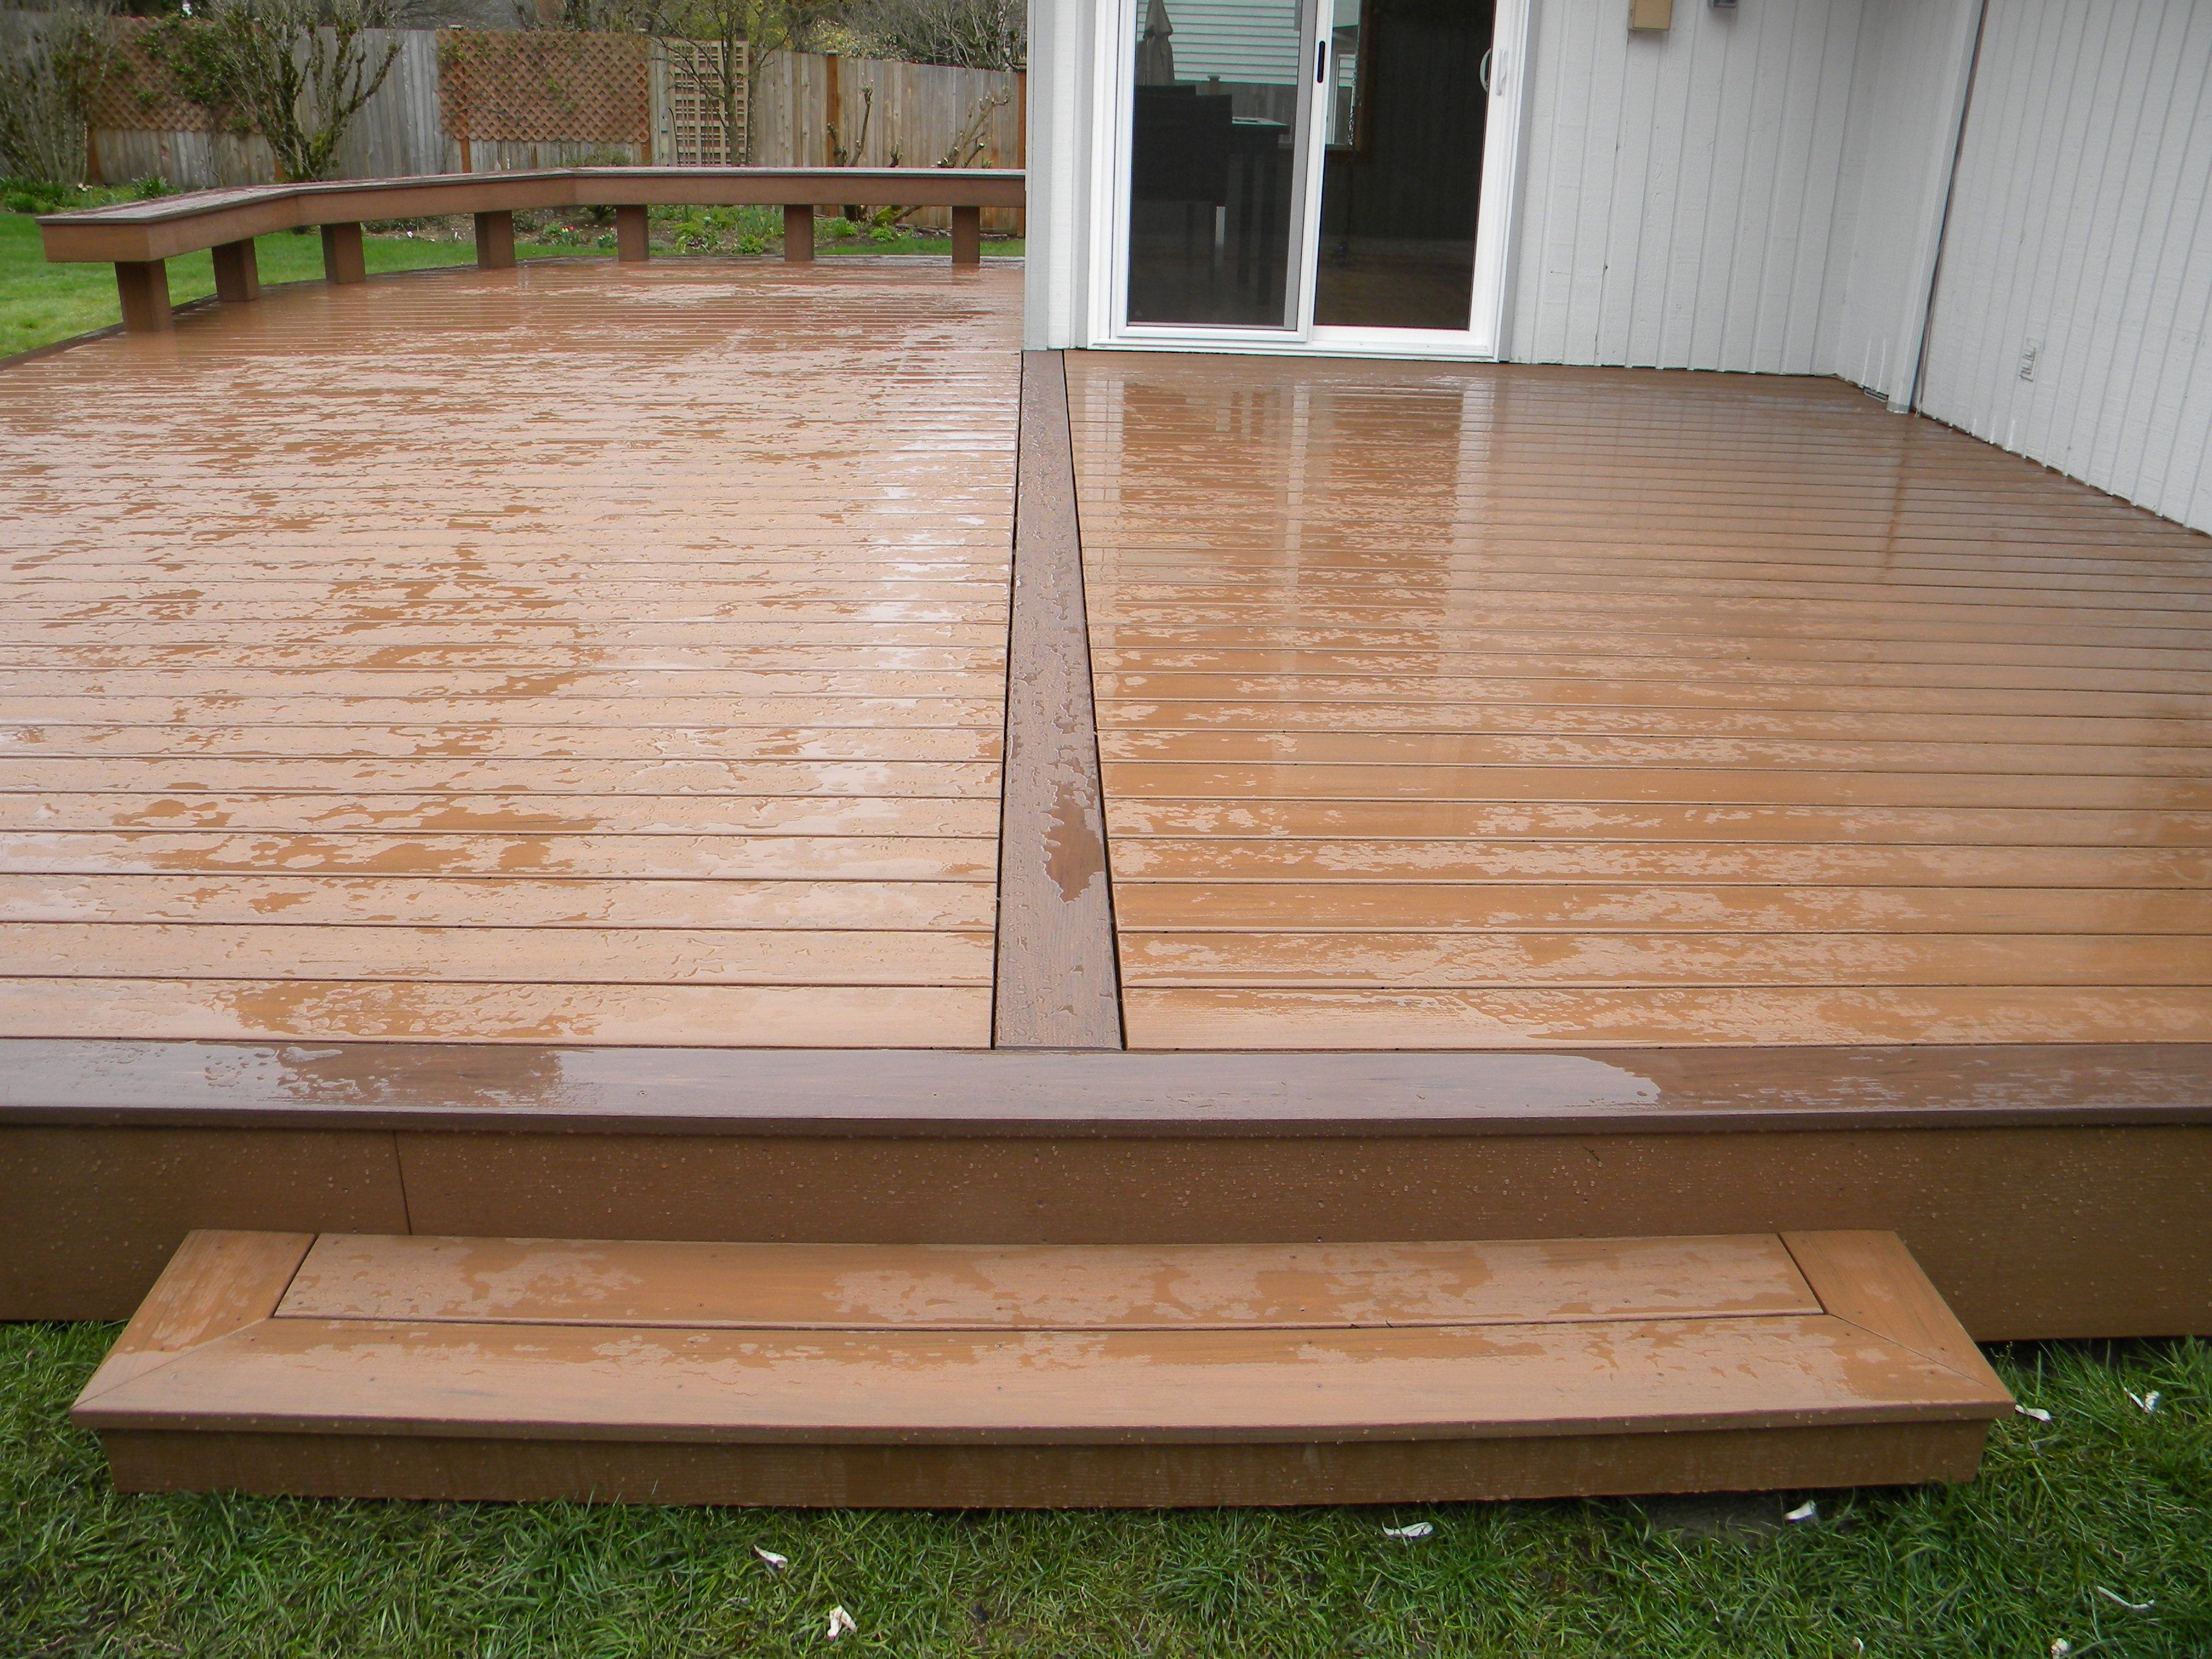 Interesting azek decking for deck ideas sandybrown azek decking are you having trouble deciding between a wood deck and a composite deck on one hand traditional wood decking is cheaper to install but expensive and baanklon Image collections